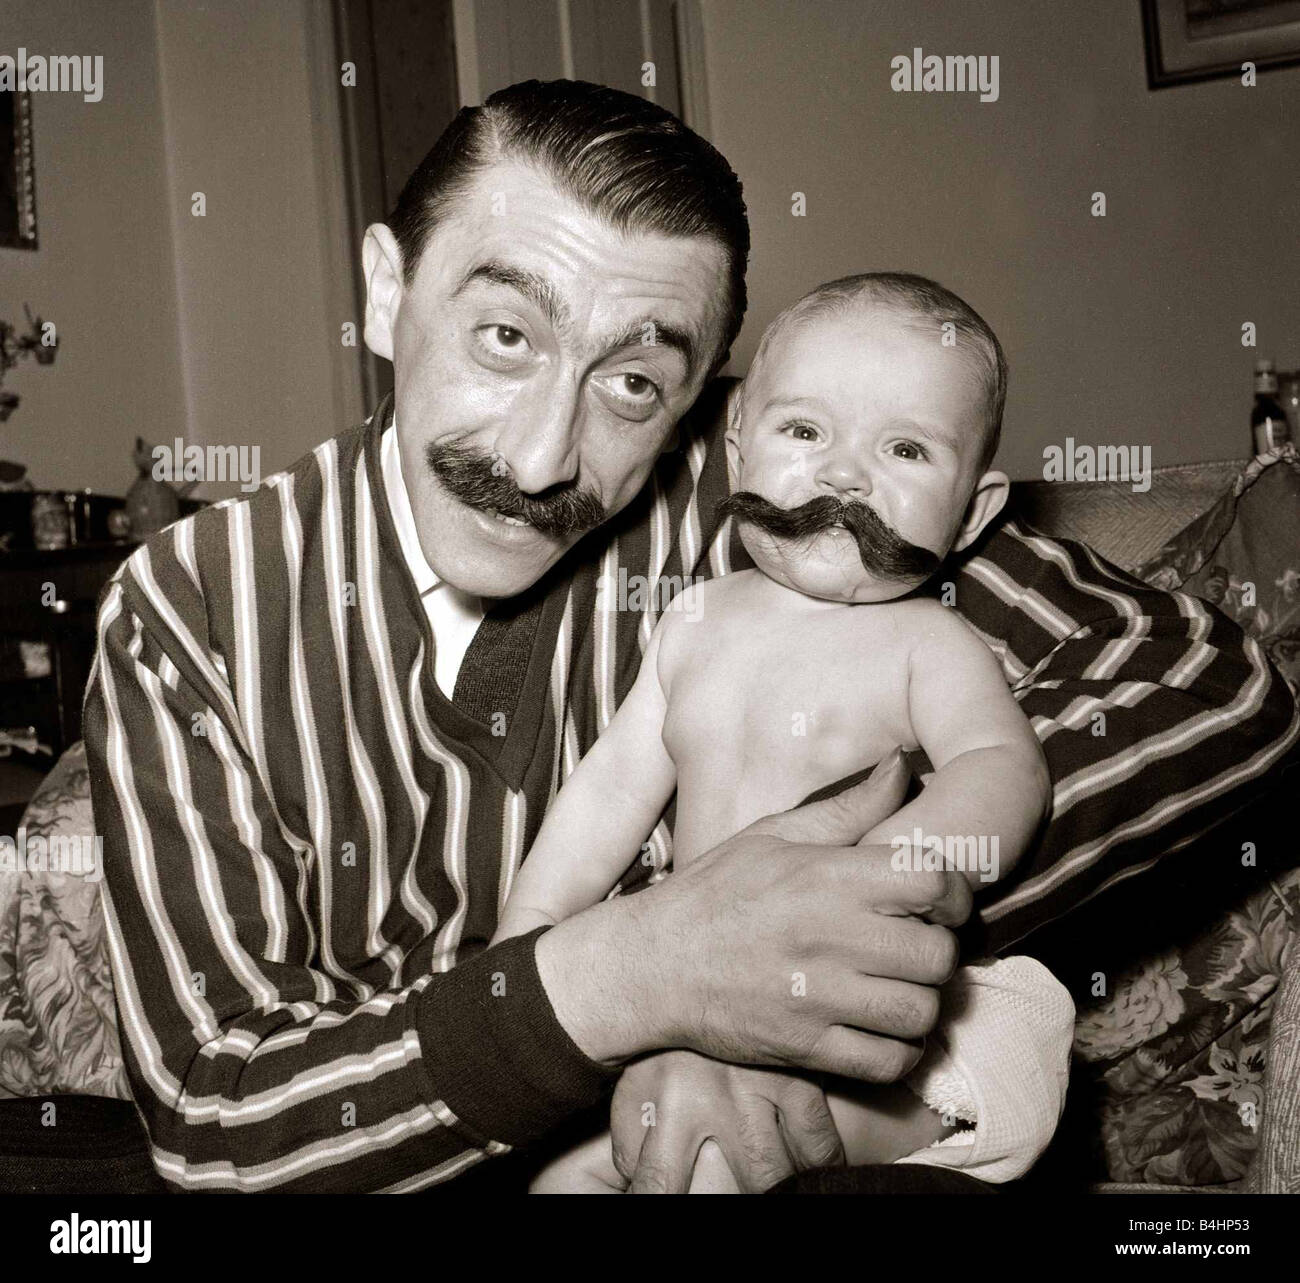 Actor Mario Fabrizi 1961 with his 5 month old baby son Anthony Fabrizi Big moustaches November 1961 1960s Cute babies child kid